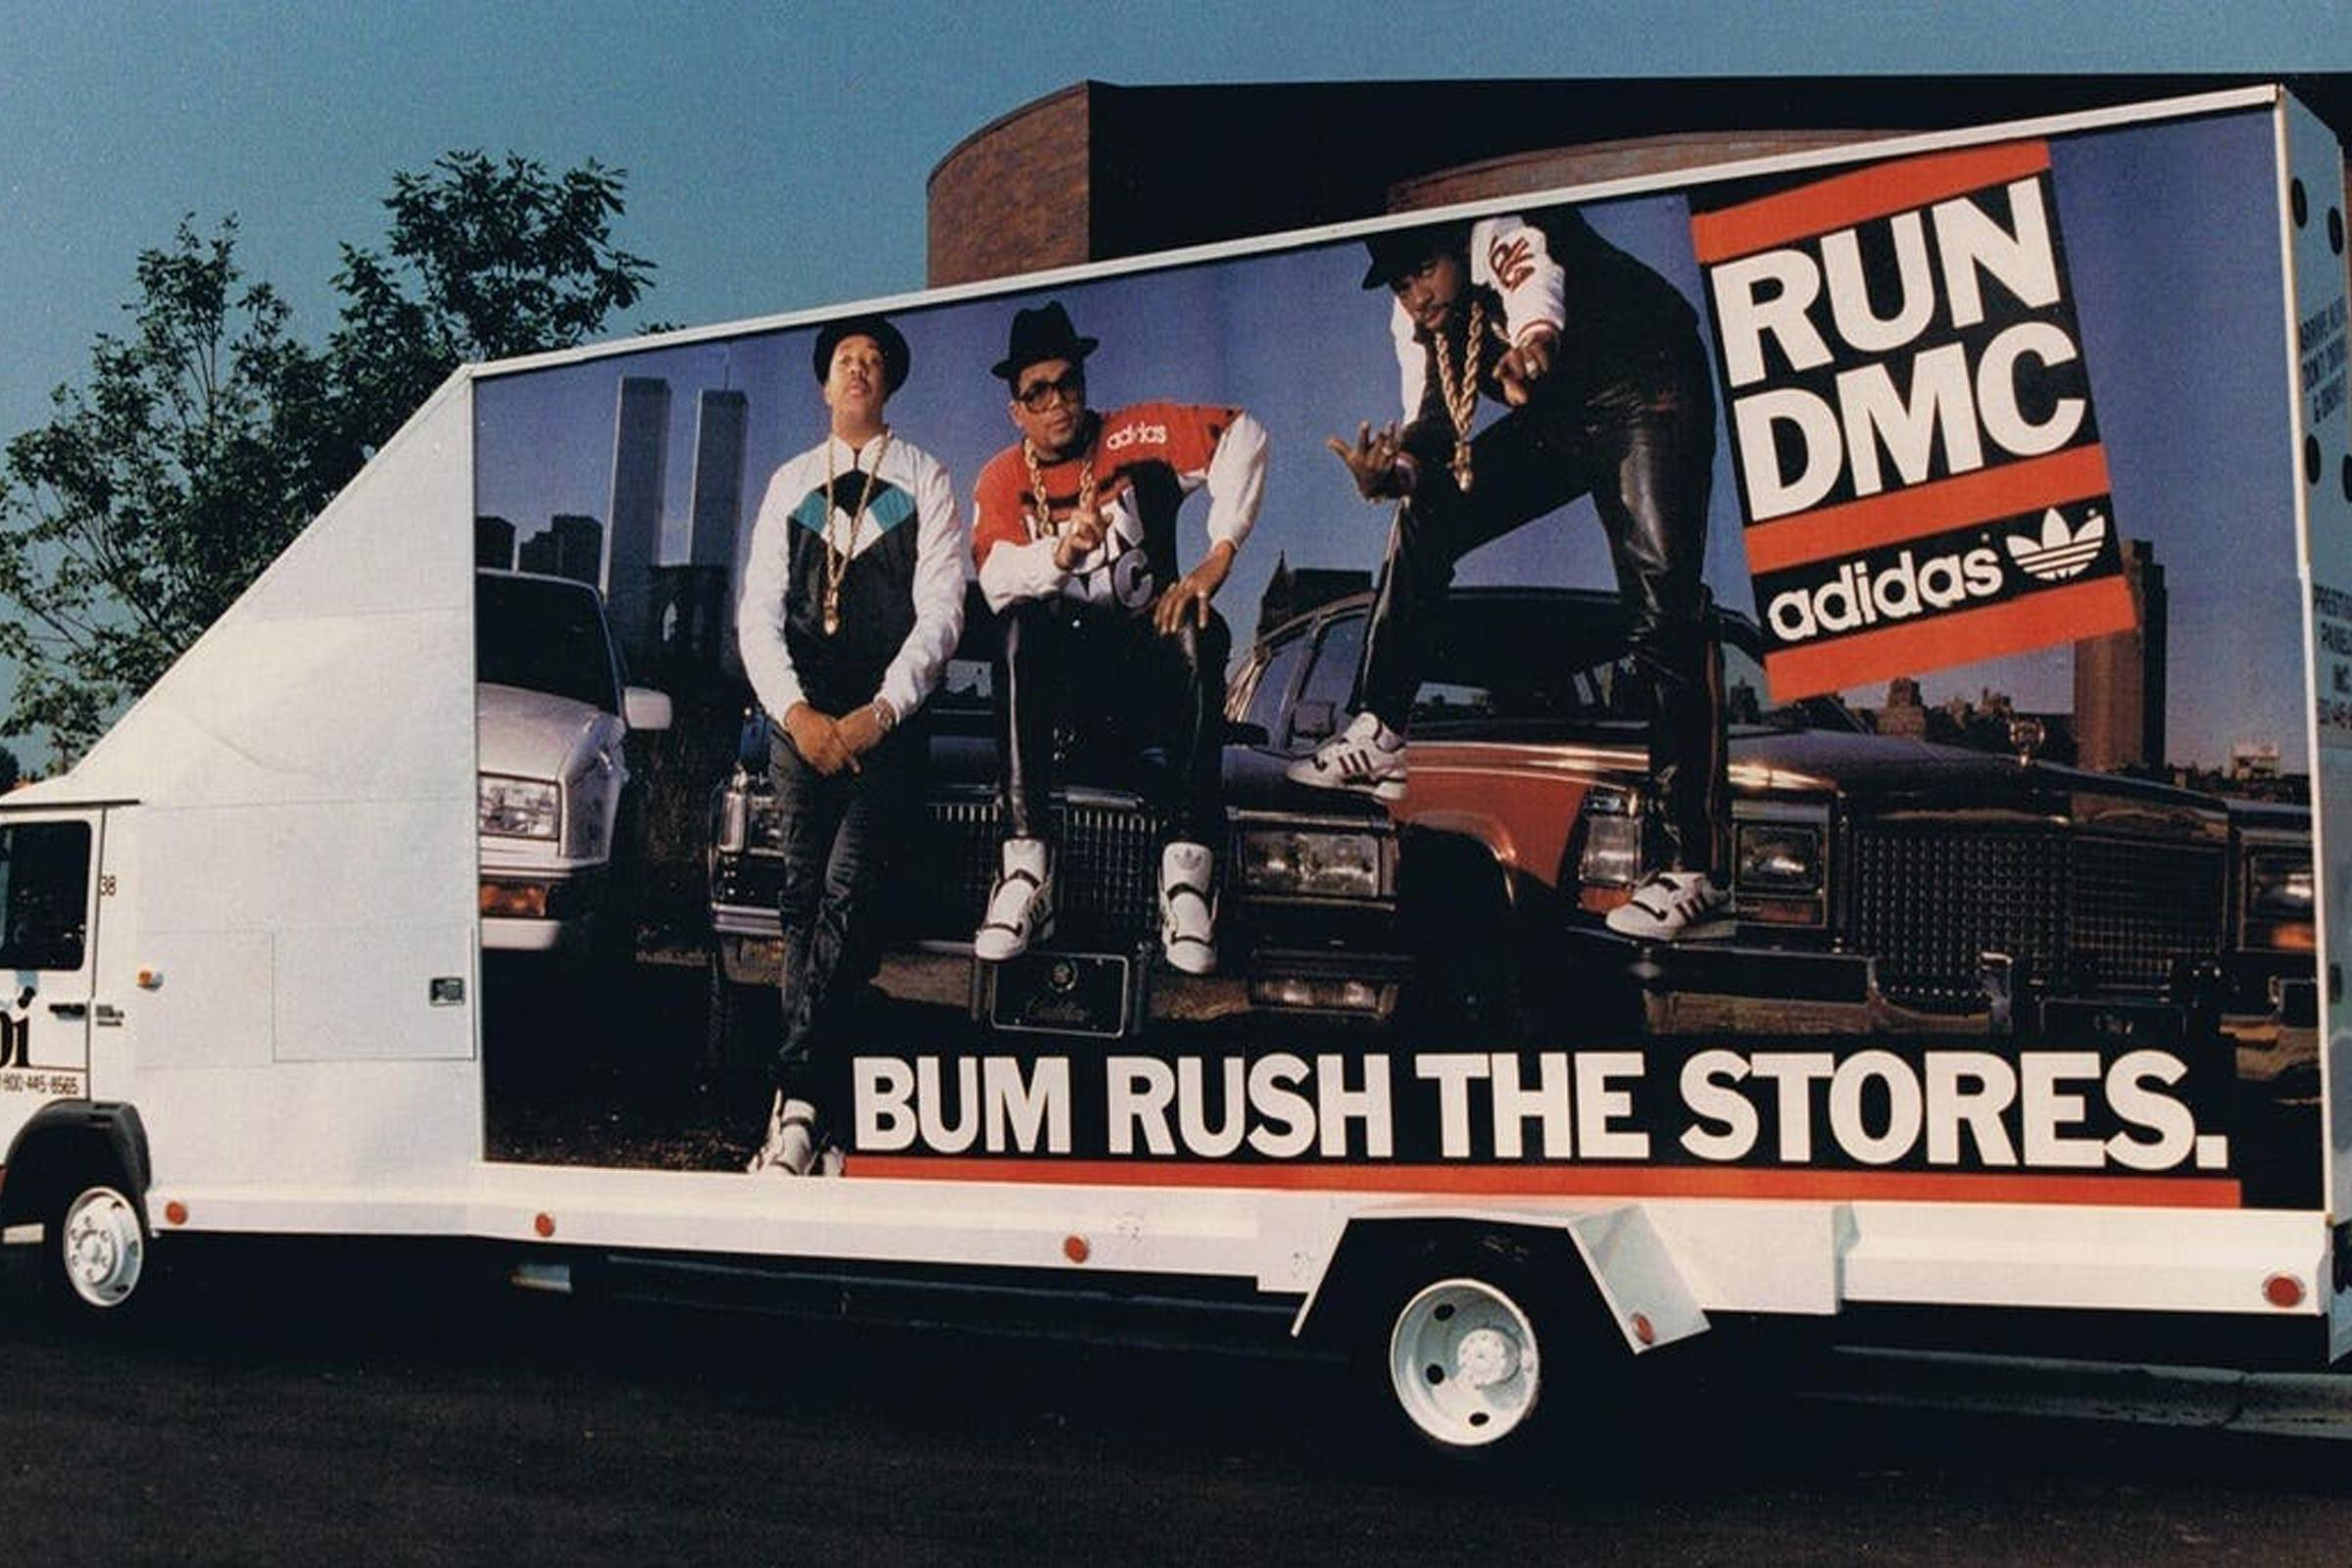 A Run-DMC adidas ad on the side of a truck